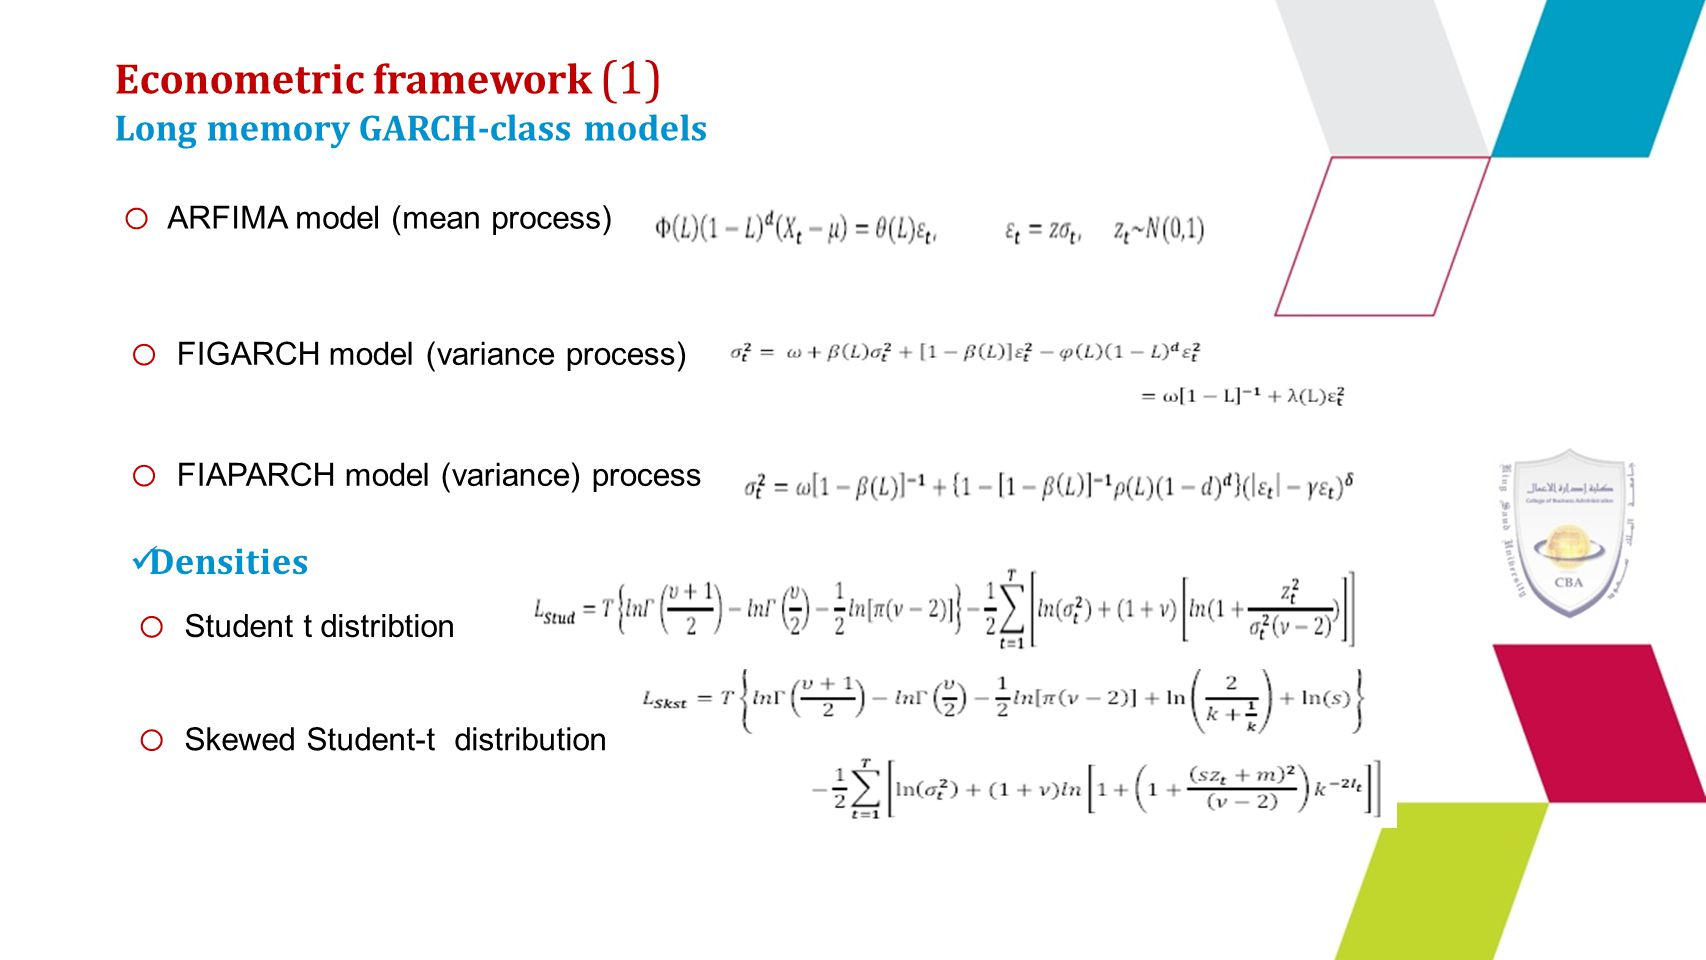 Econometric framework (1) Long memory GARCH-class models o ARFIMA model (mean process) o FIGARCH model (variance process) o FIAPARCH model (variance) process Densities o Student t distribtion o Skewed Student-t distribution